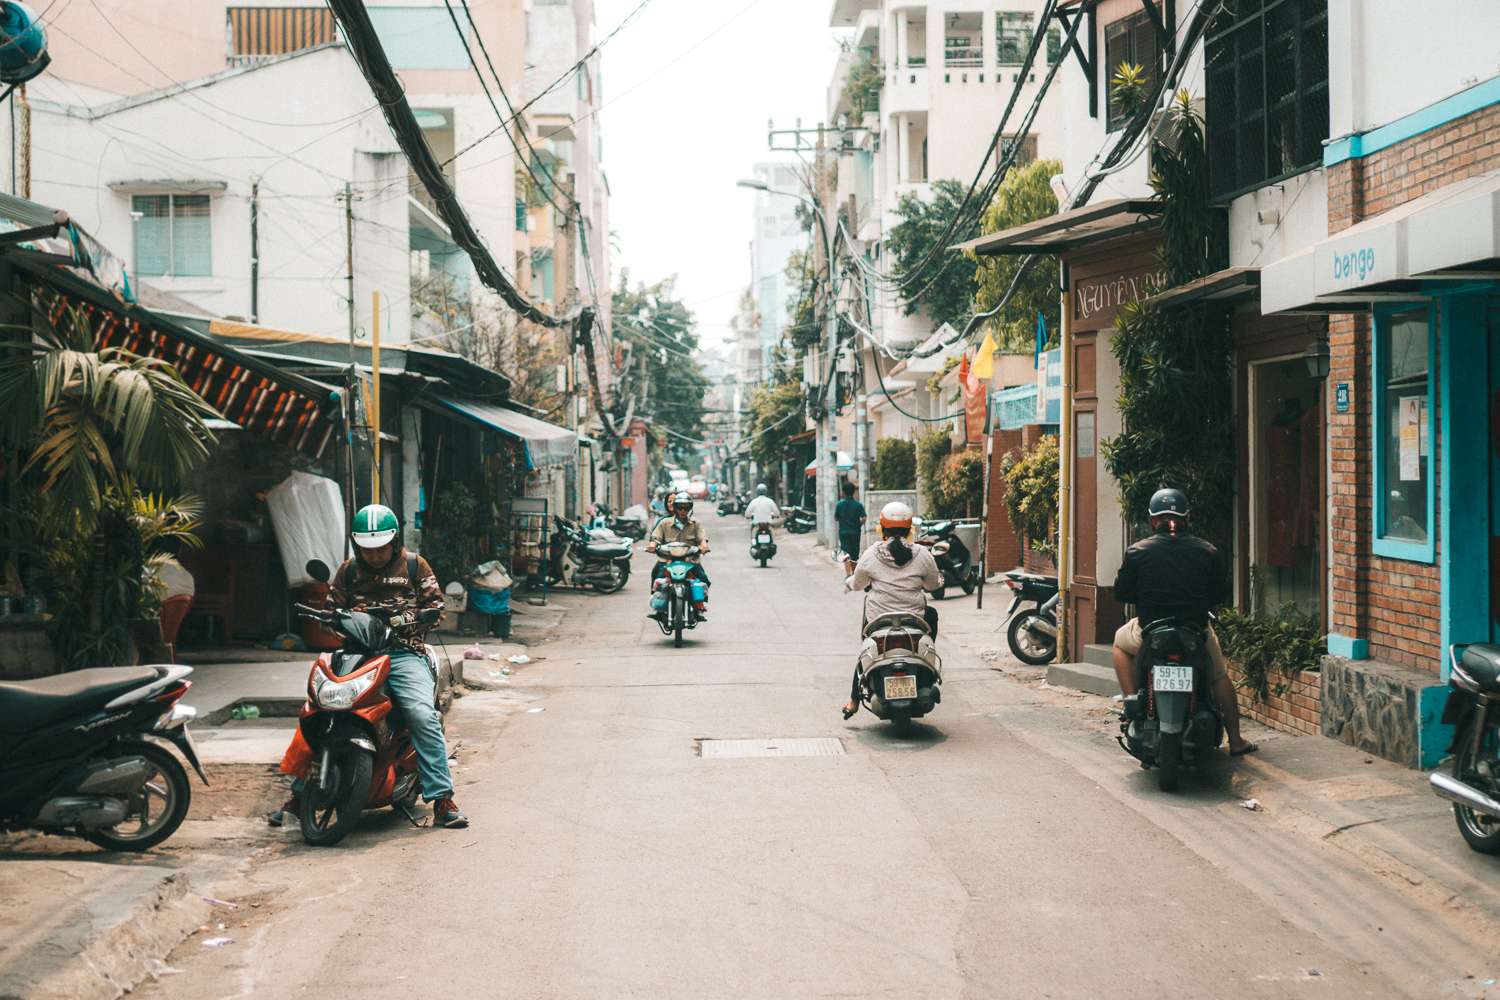 Top 5 Reasons Why Vietnam is the Best Country for Digital Nomads - Offbeat Escapades